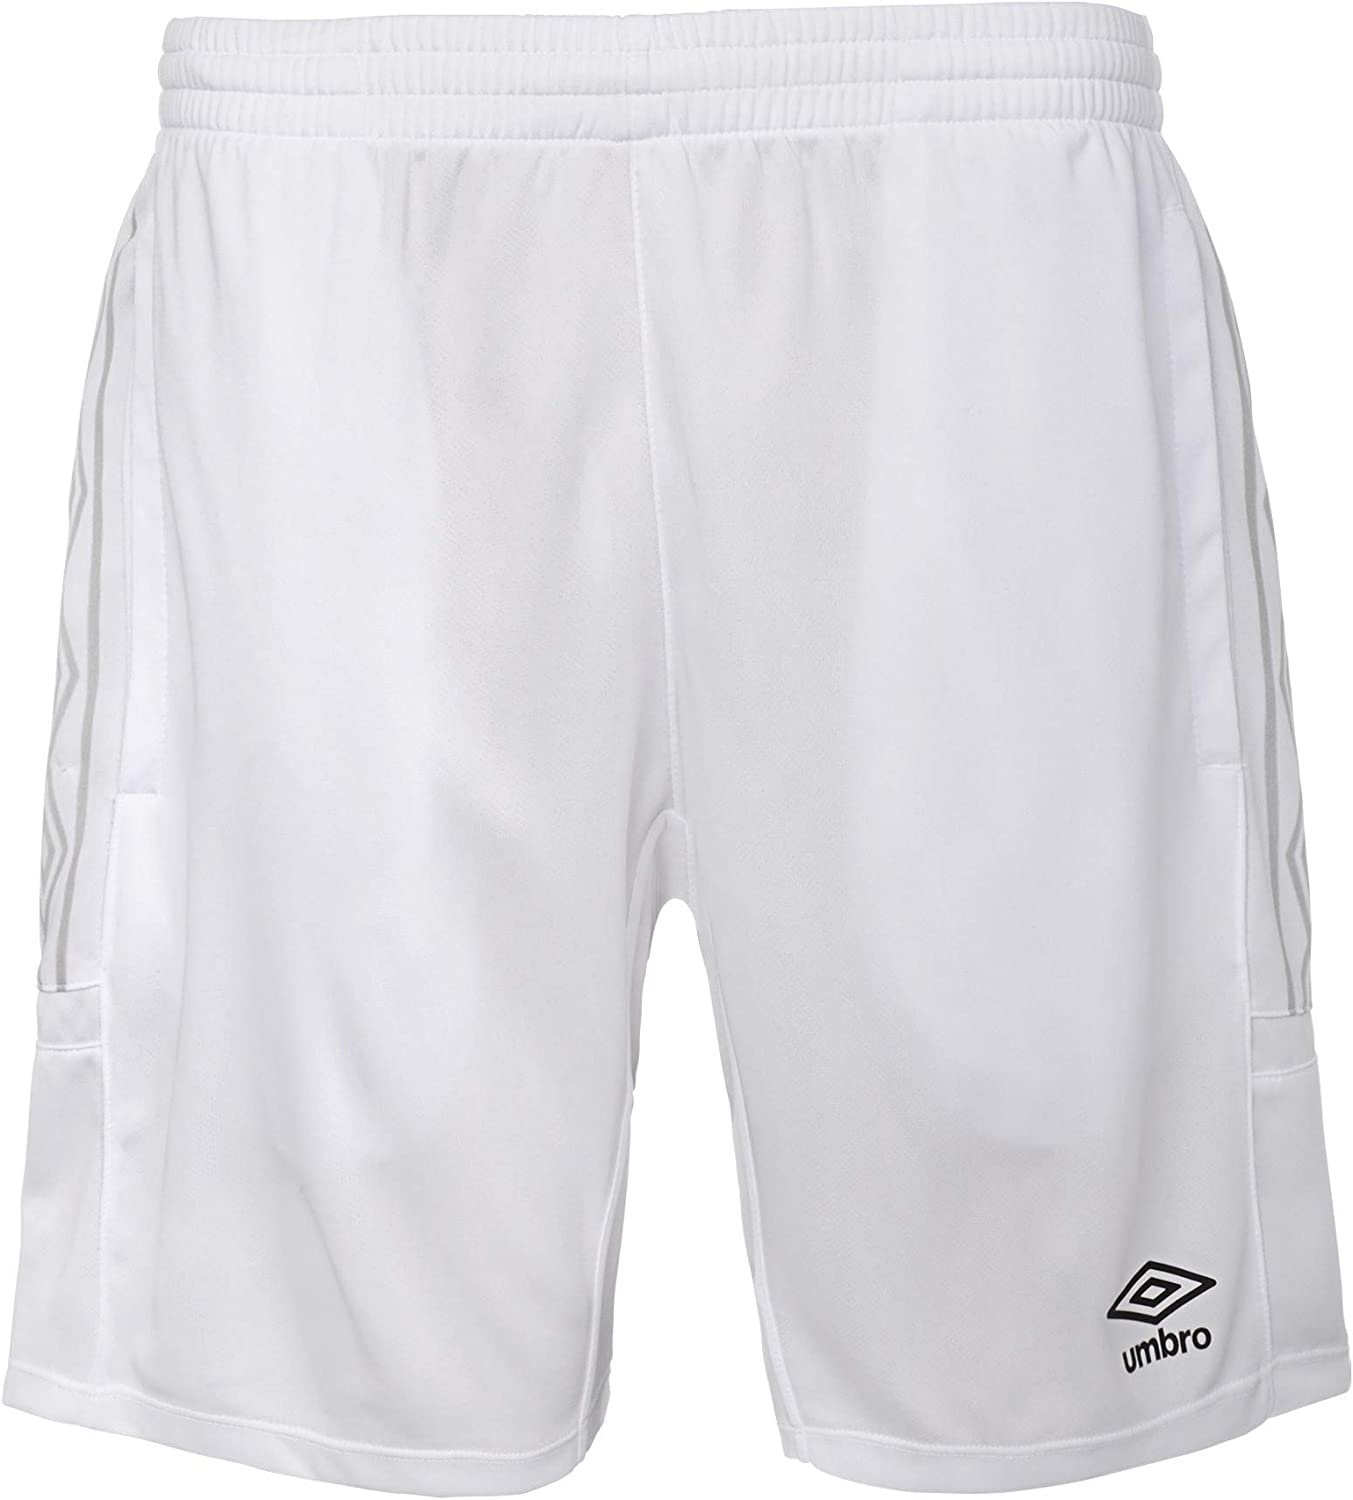 Ranking Outlet sale feature TOP14 Umbro Kids' Legacy Short